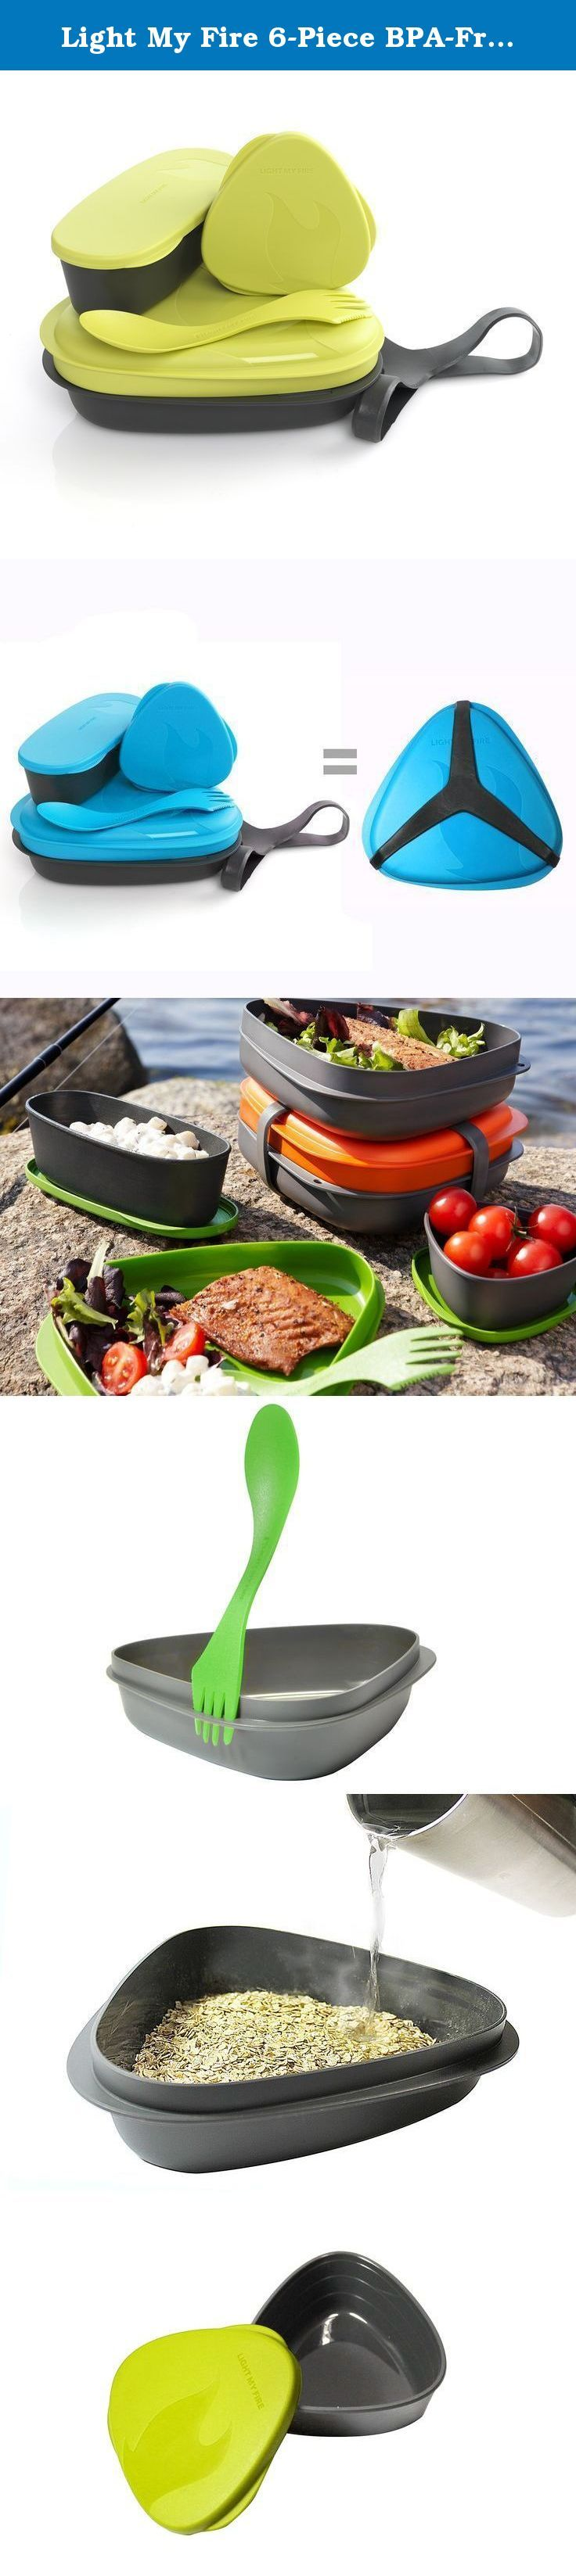 Light My Fire 6-Piece BPA-Free Lunch Kit with Plate, Bowl, Storage Boxes and Spork. Designed especially for Light My Fire by Scandinavian designer Joachim Nordwall, the LunchKit has become a modern classic. The colorful LunchKit has been updated and expanded to include 6 utilitarian pieces: 1 lid/plate, 1 plate/bowl, 1 SnapBox original with lid (170 ml), 1 SnapBox Oval with lid (320 ml), 1 Spork original and a carry harness. The LunchKit packs up into its own container and is held…